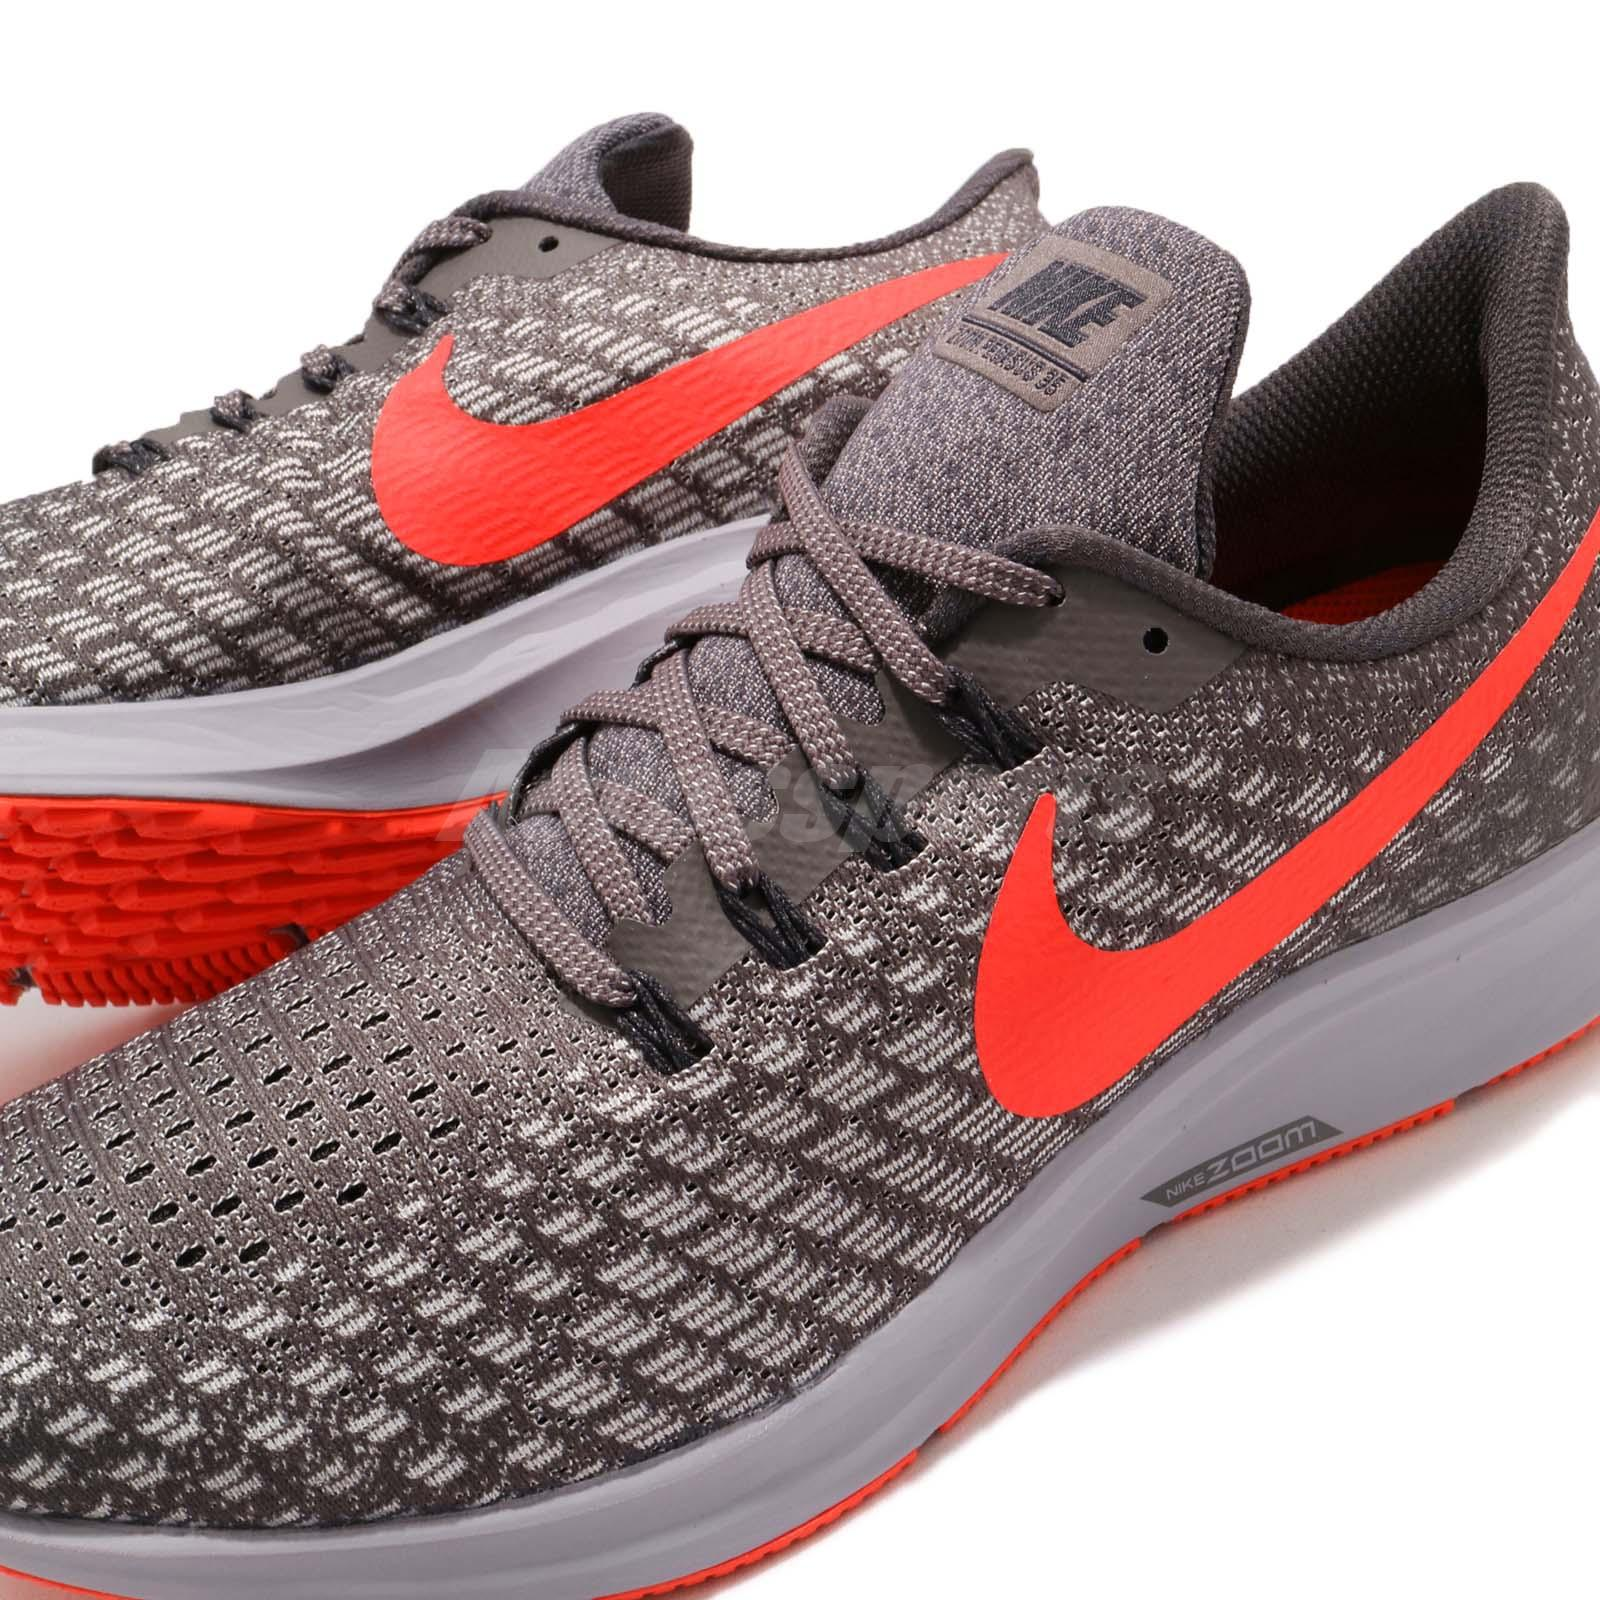 official photos 347c9 2a426 Details about Nike Air Zoom Pegasus 35 Thunder Grey Bright Crimson Men  Running Shoe 942851-006